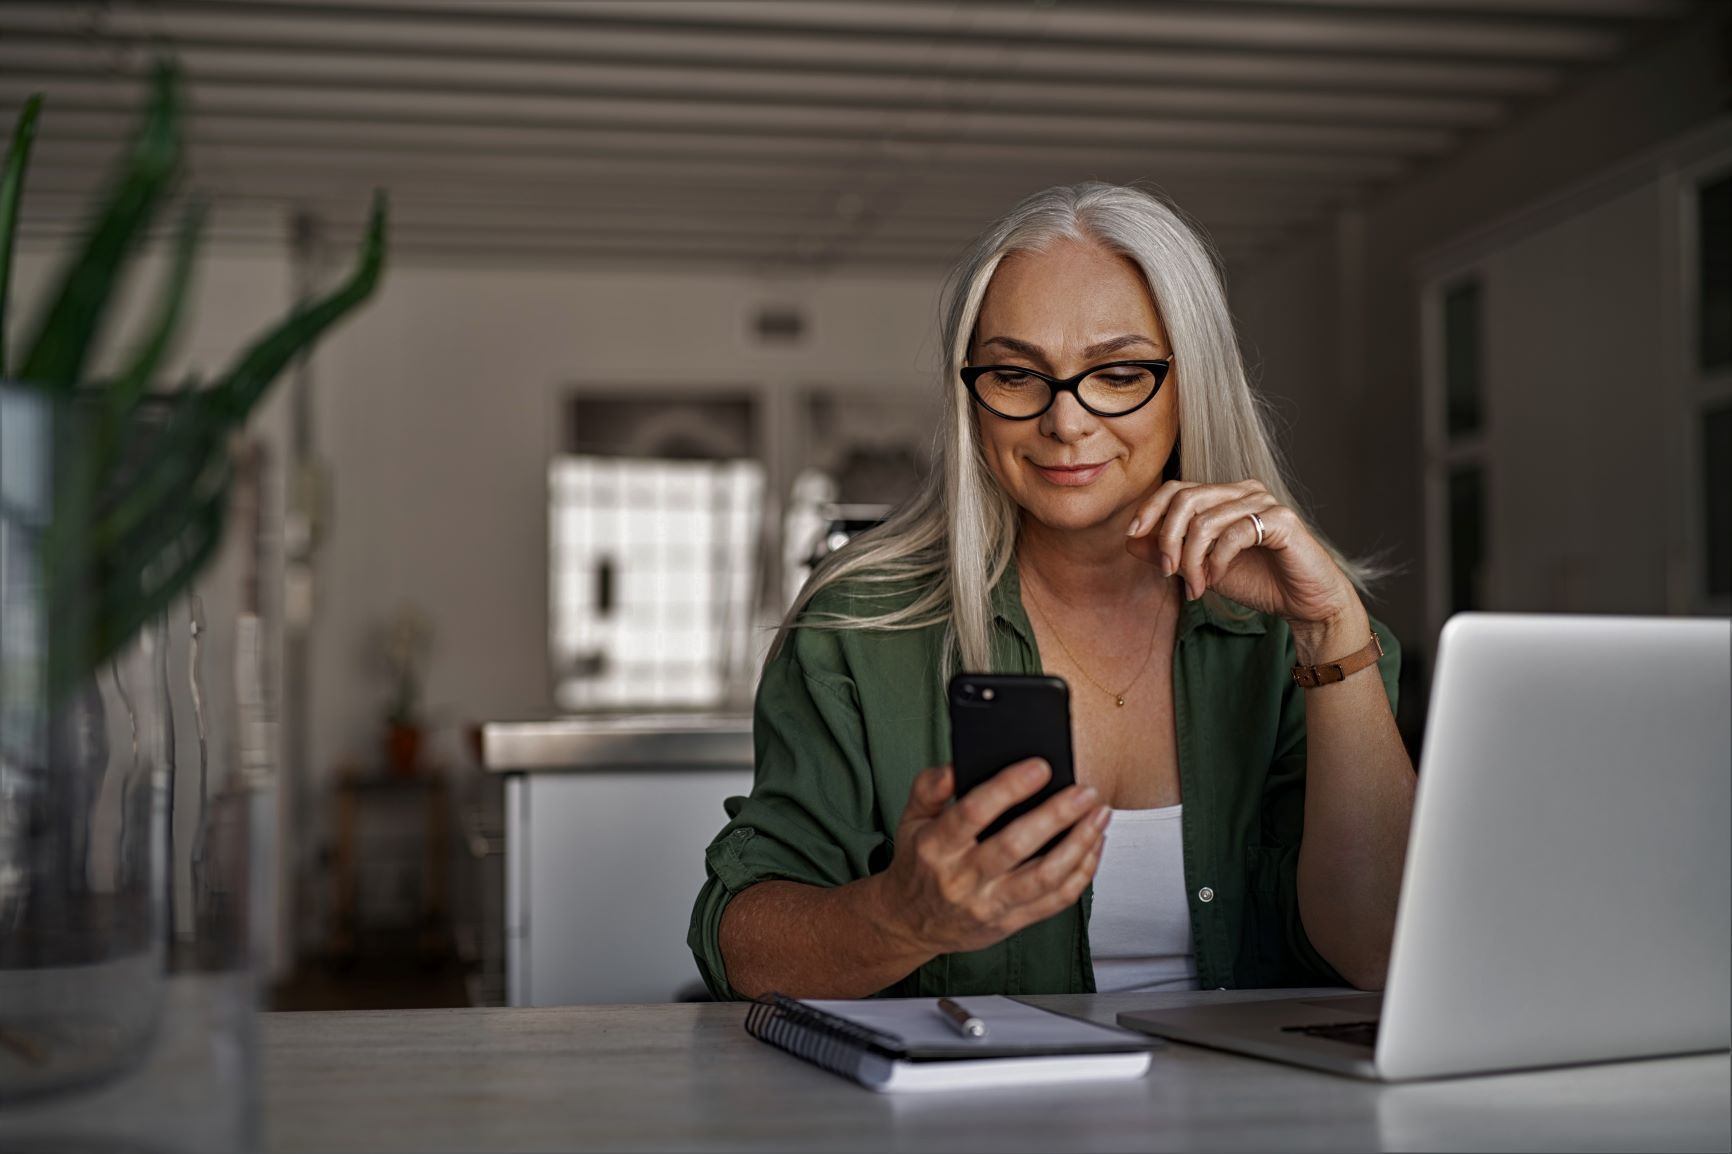 A woman looking at a mobile phone and a laptop.